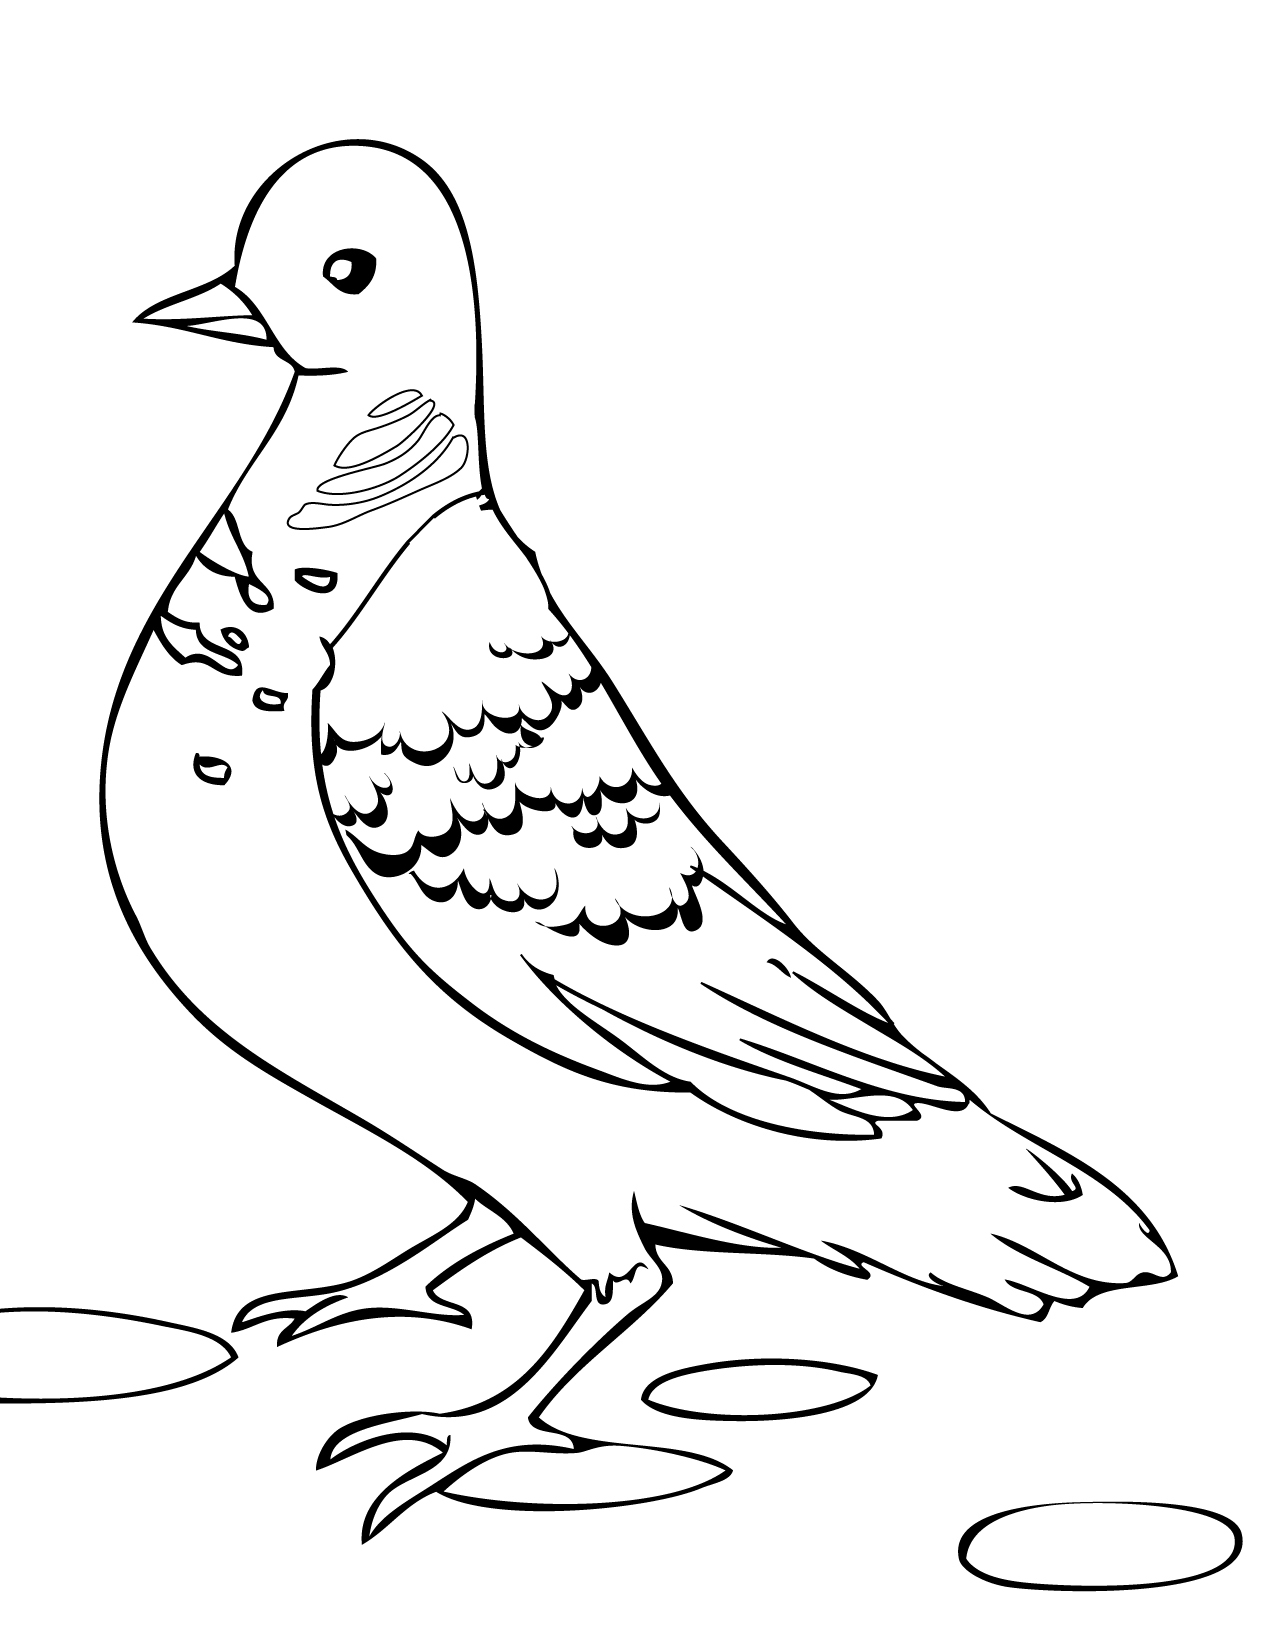 doves coloring pages dove coloring pages coloring doves pages